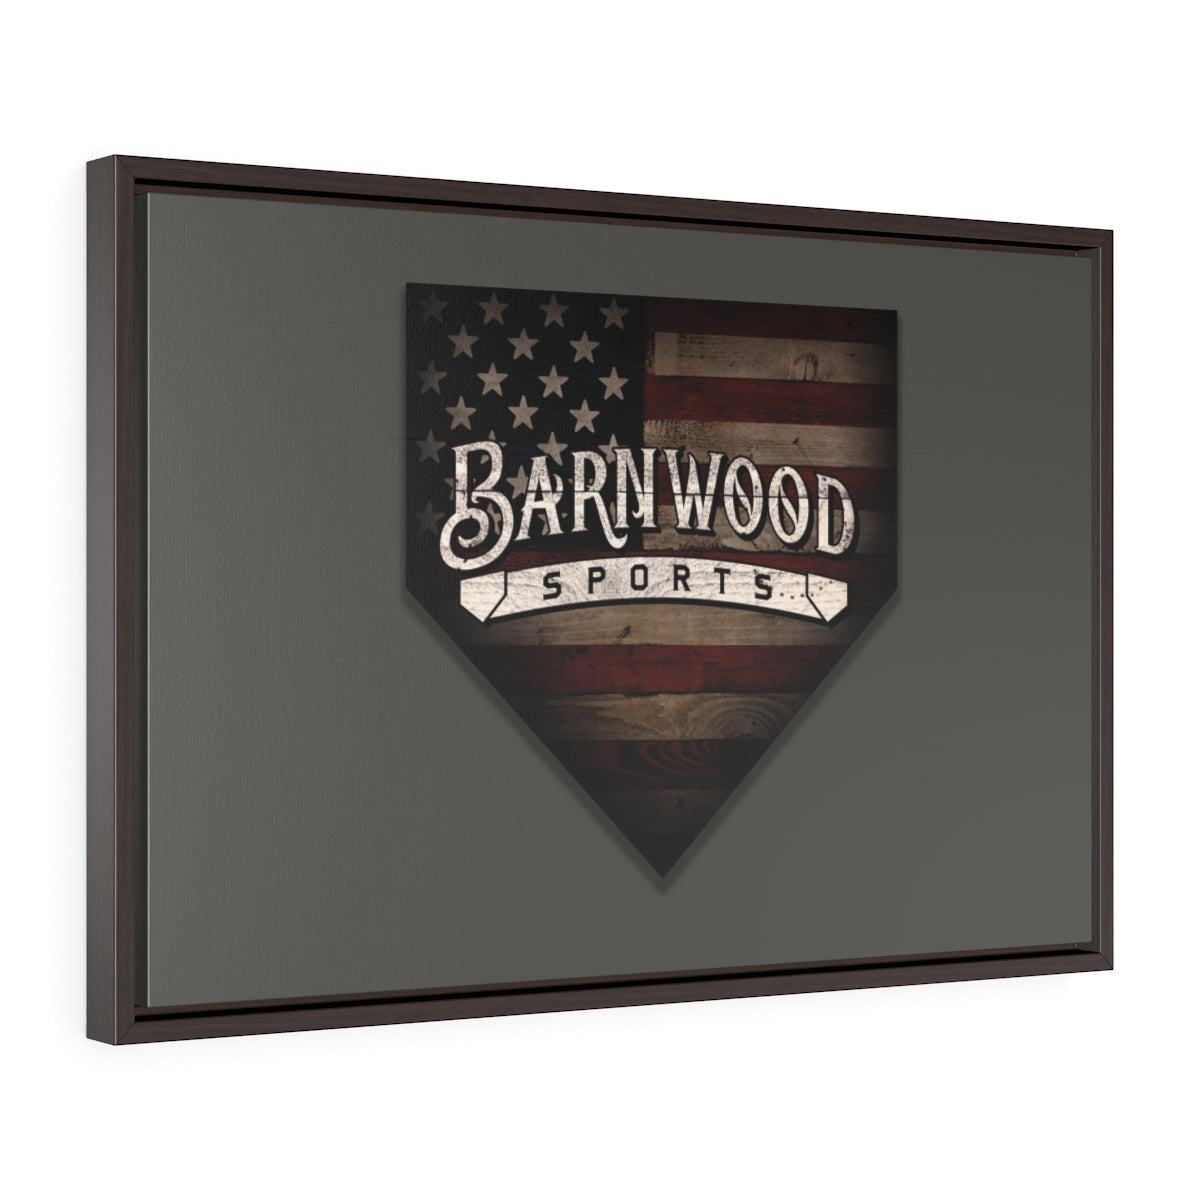 Barnwood Sports Framed Wrapped Wall Canvas